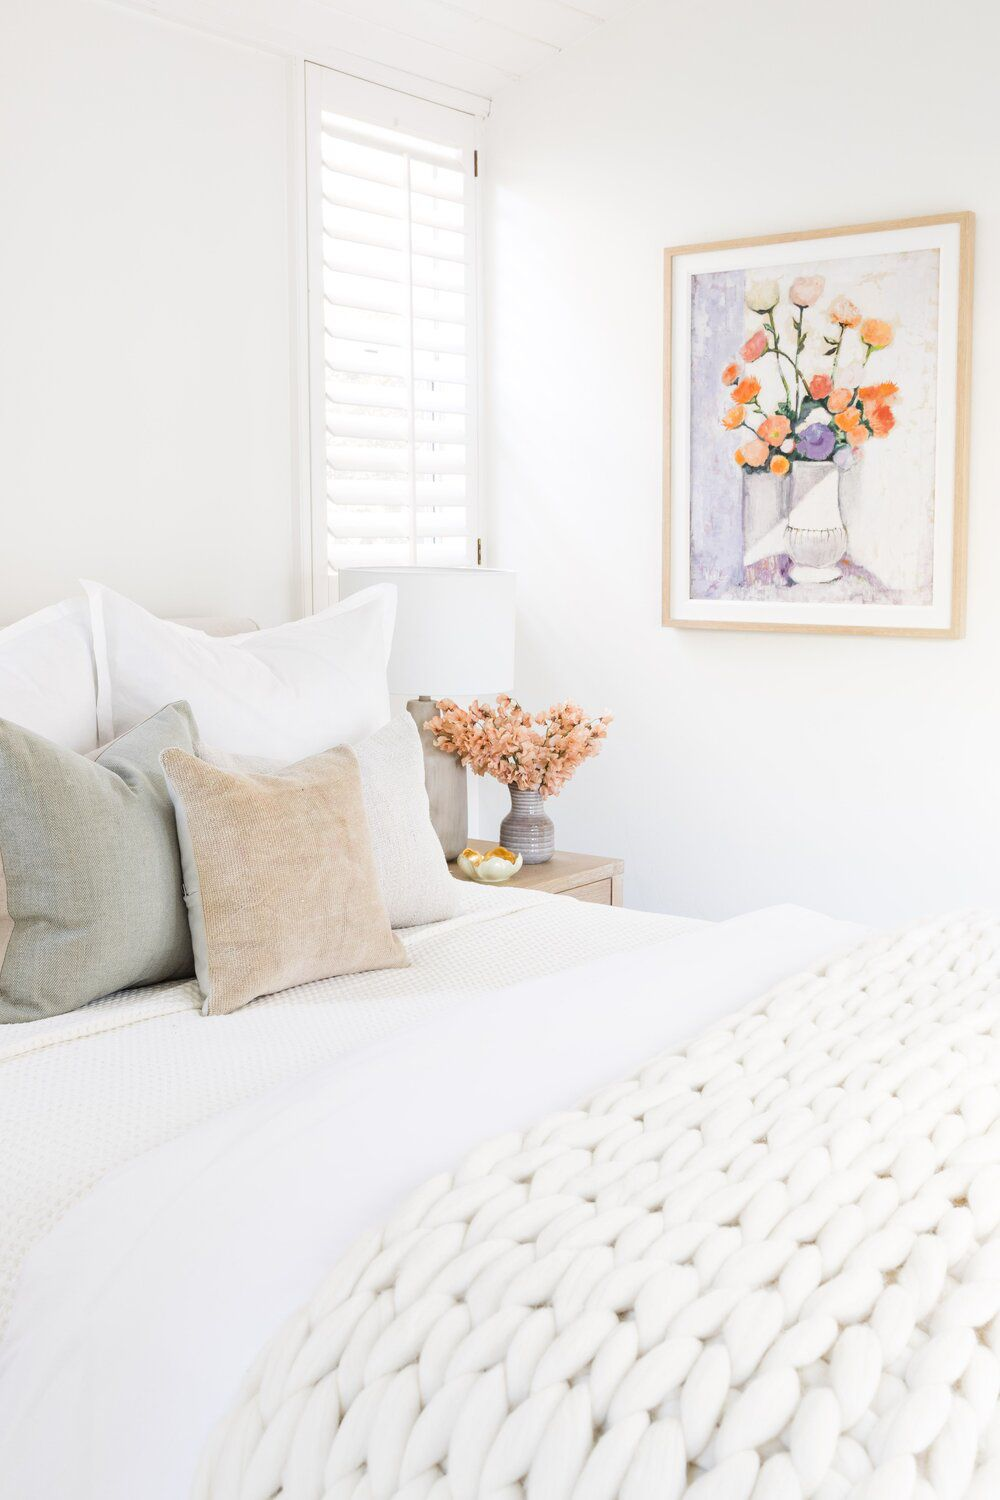 A white bedroom with a lavender vase and a lavender painting of a bouquet